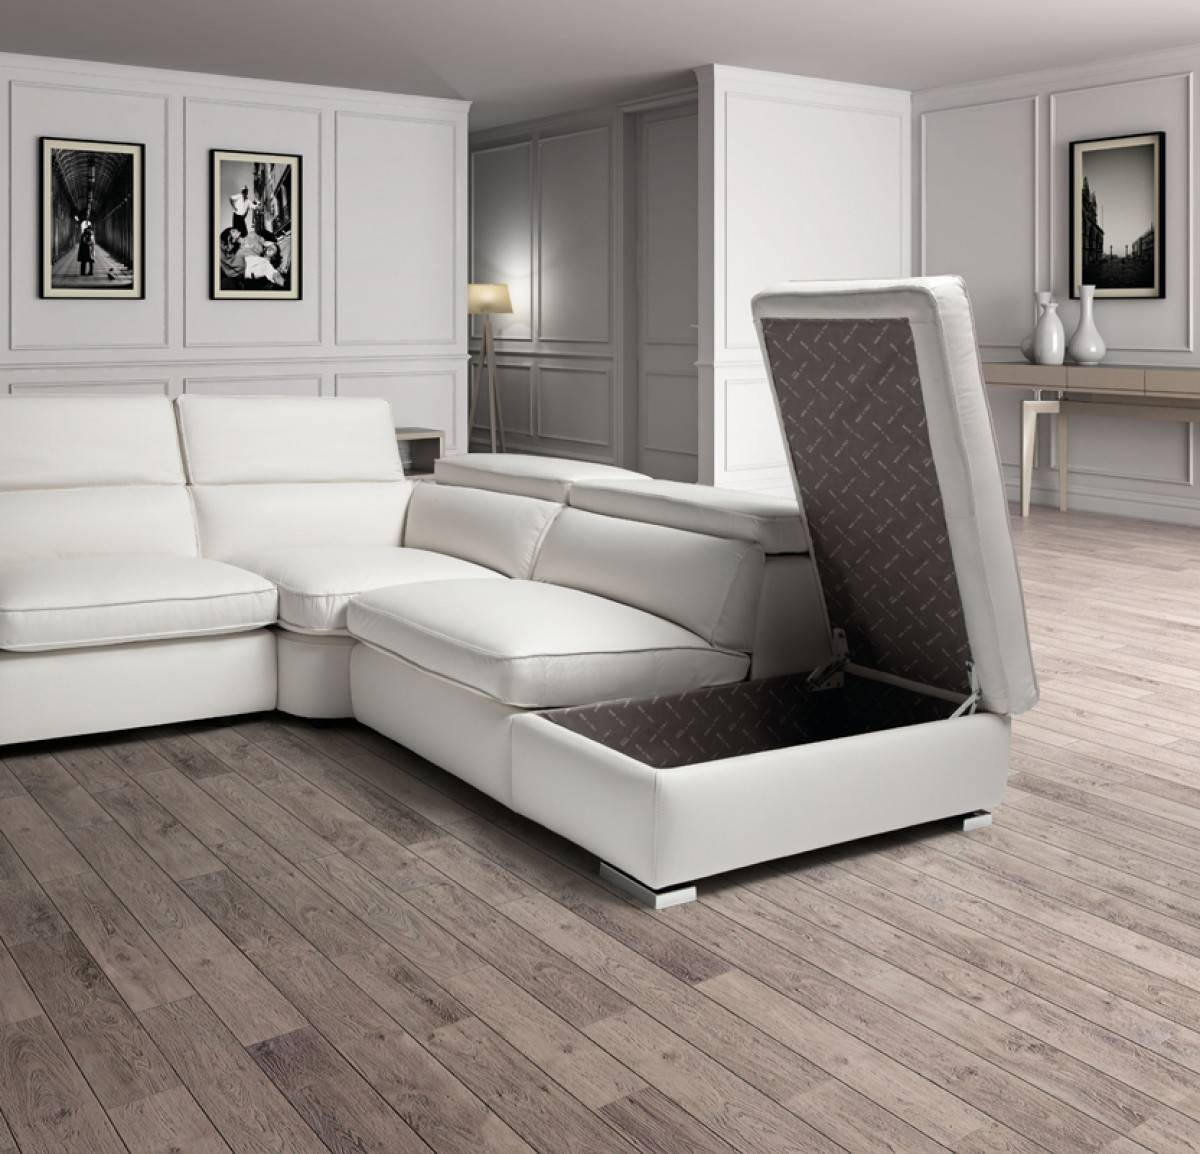 Estro Salotti Vertigo Modern White Leather Sectional Sofa W for Leather Storage Sofas (Image 8 of 30)